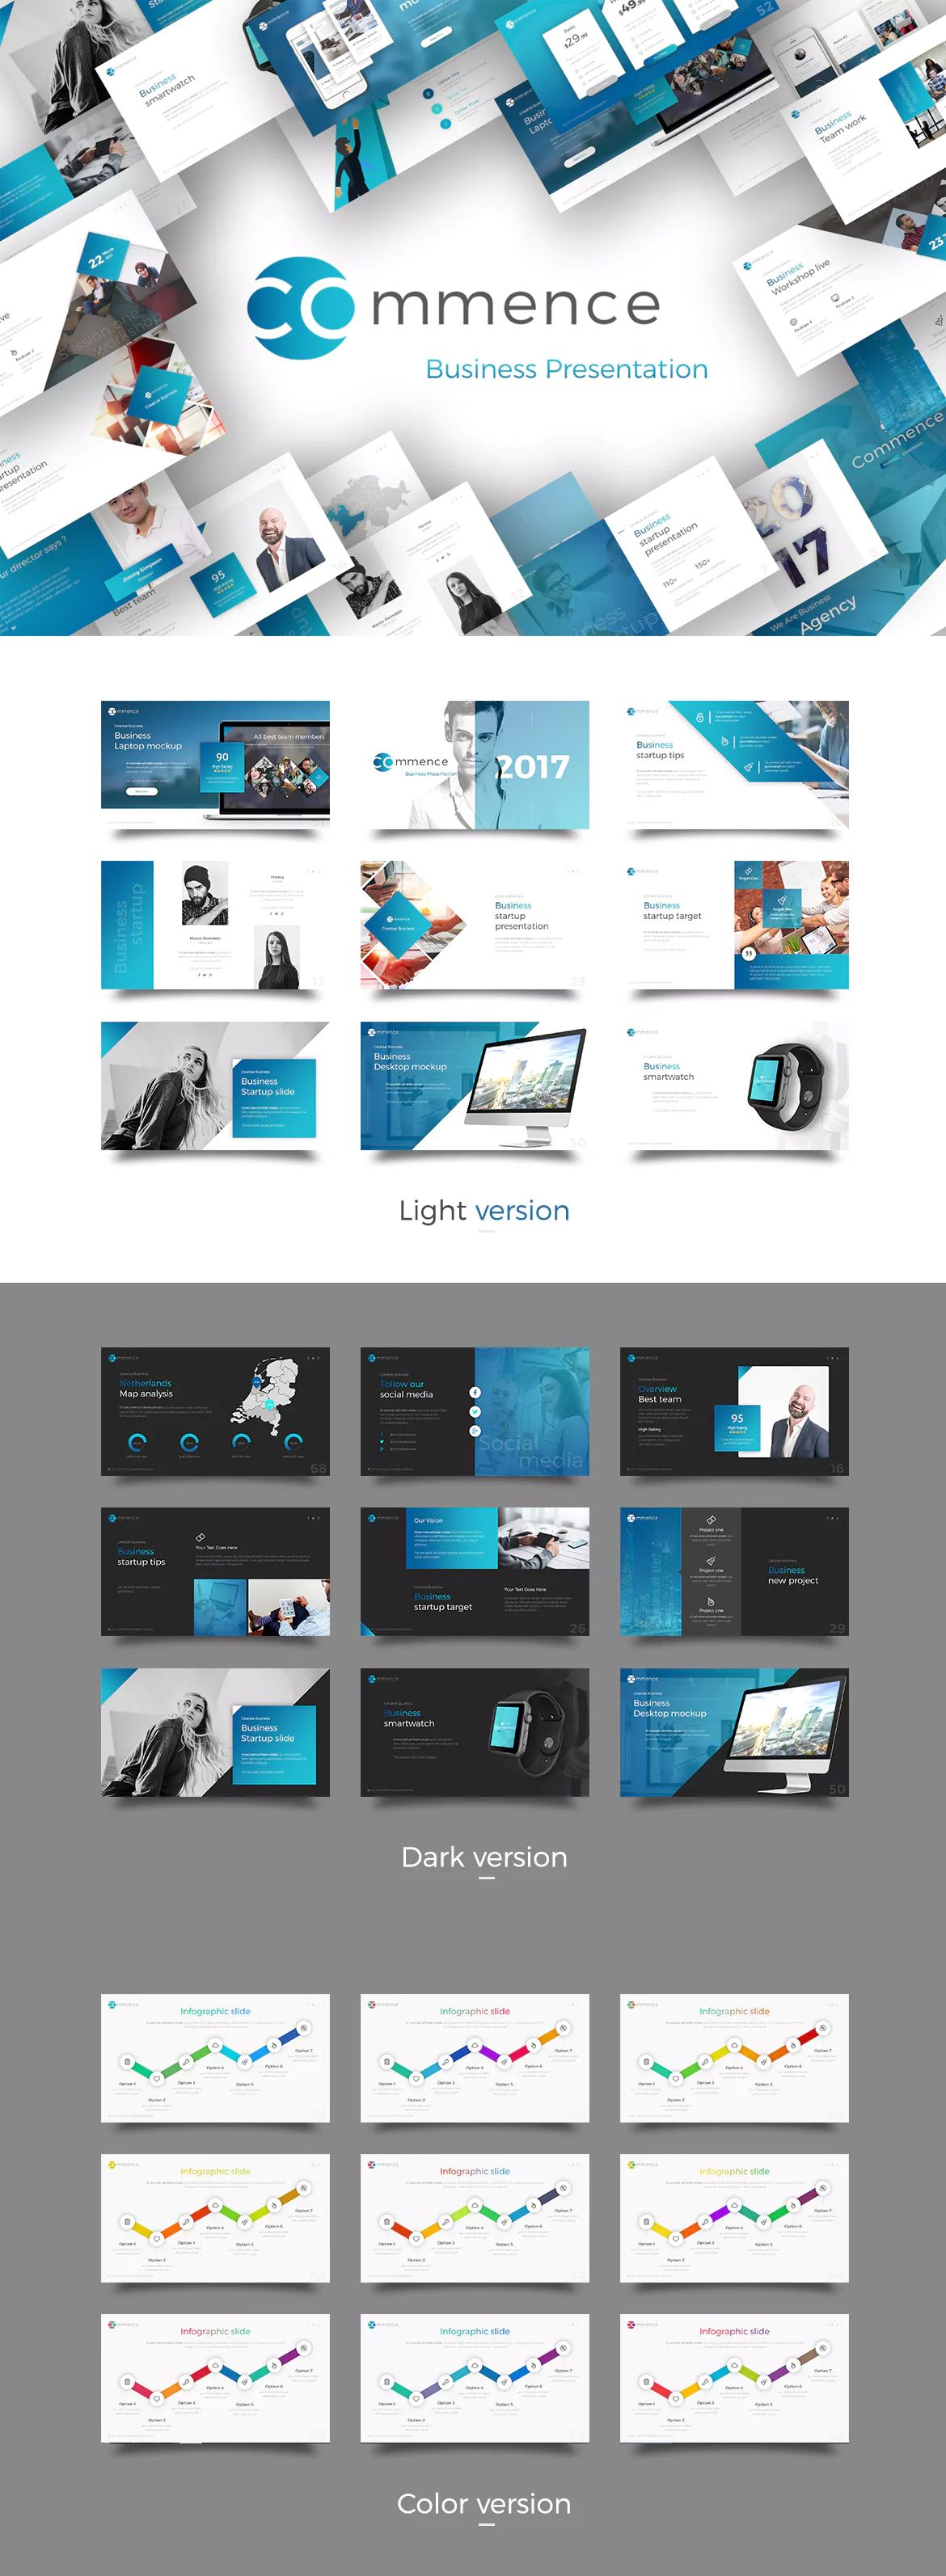 Commence Business Presentation Template  Powerpoint Presentation